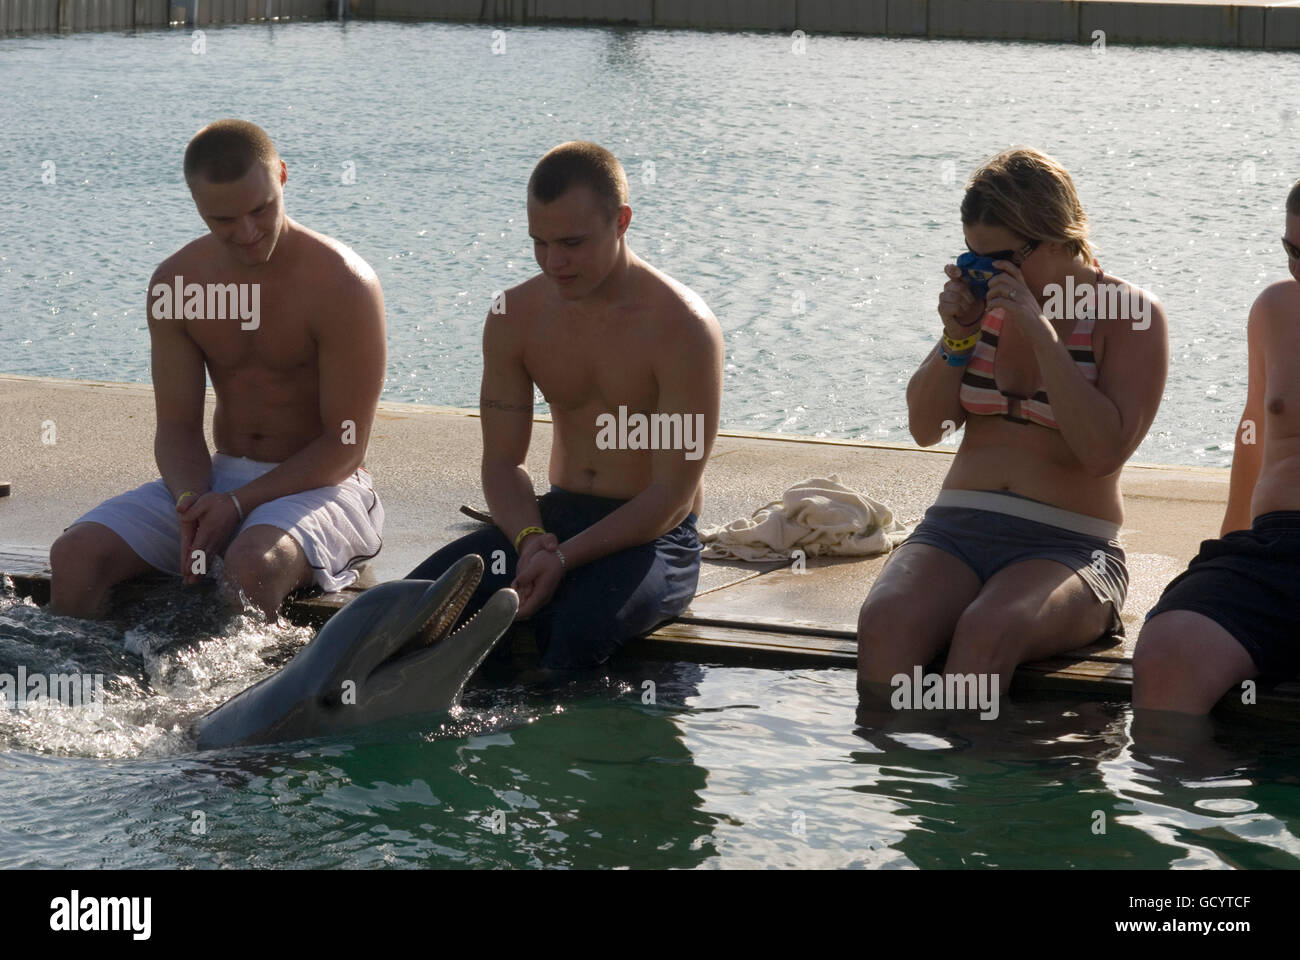 Sanctuary Bay, Grand Bahama. Bahamas. UNEXSO. Program Swim and close encounter with the dolphins. - Stock Image